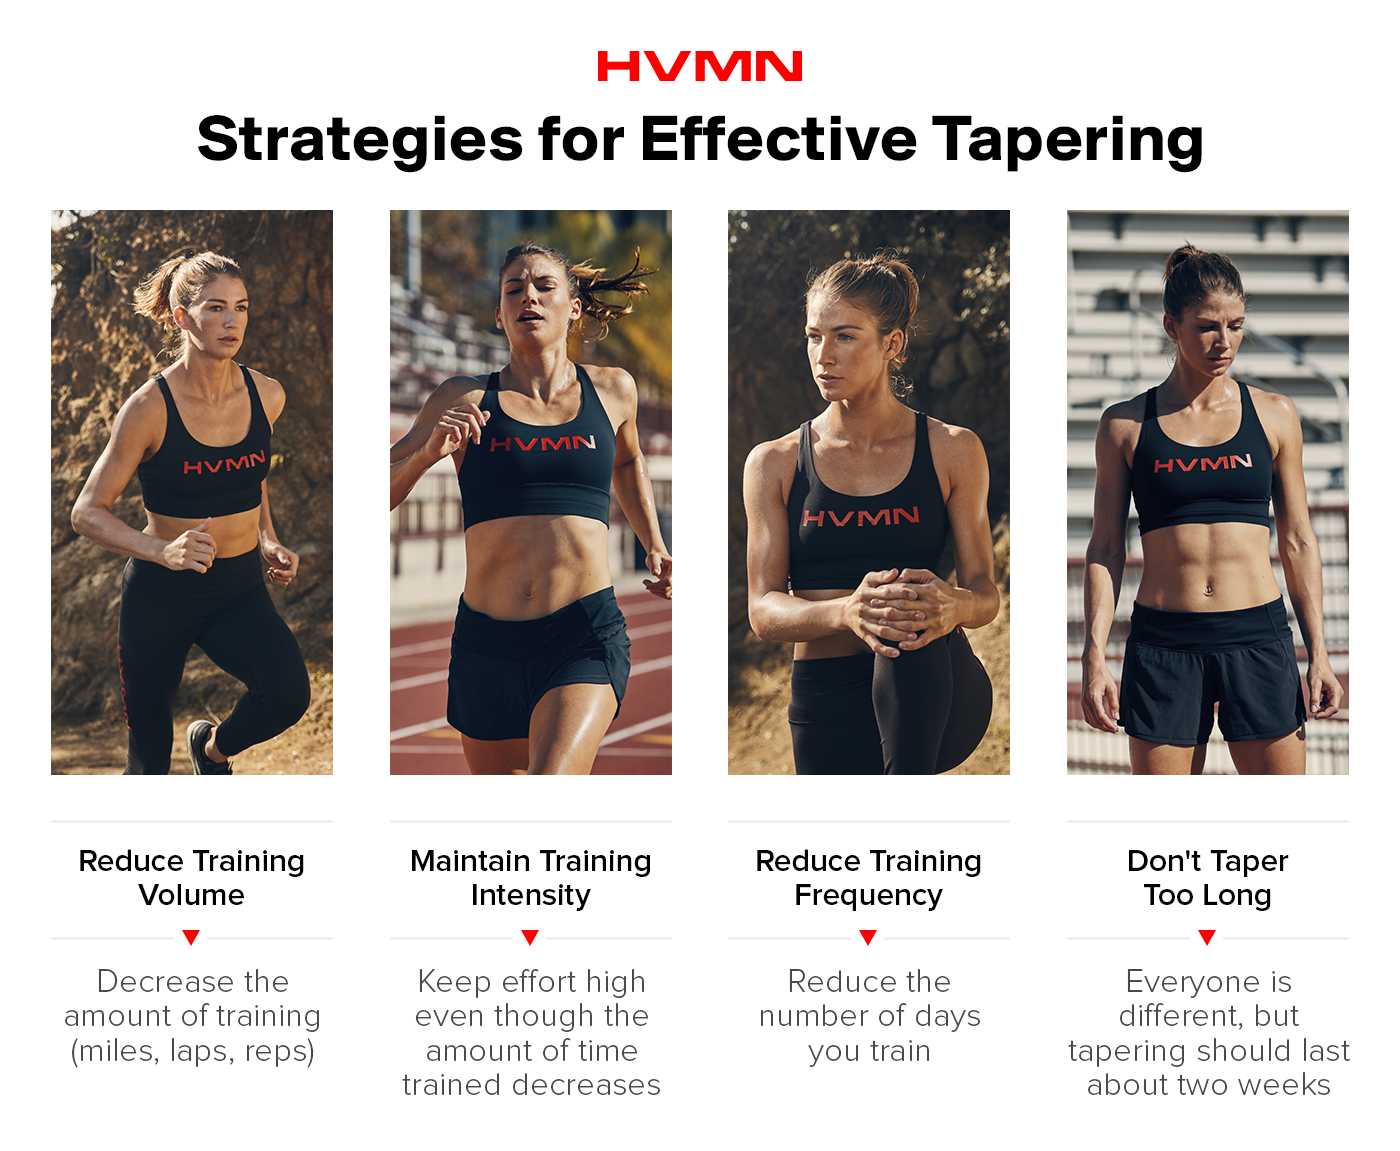 A female runner through for different strategies for tapering: she is running uphill in the first image, sprinting in the second, stretching in the third and resting in the fourth